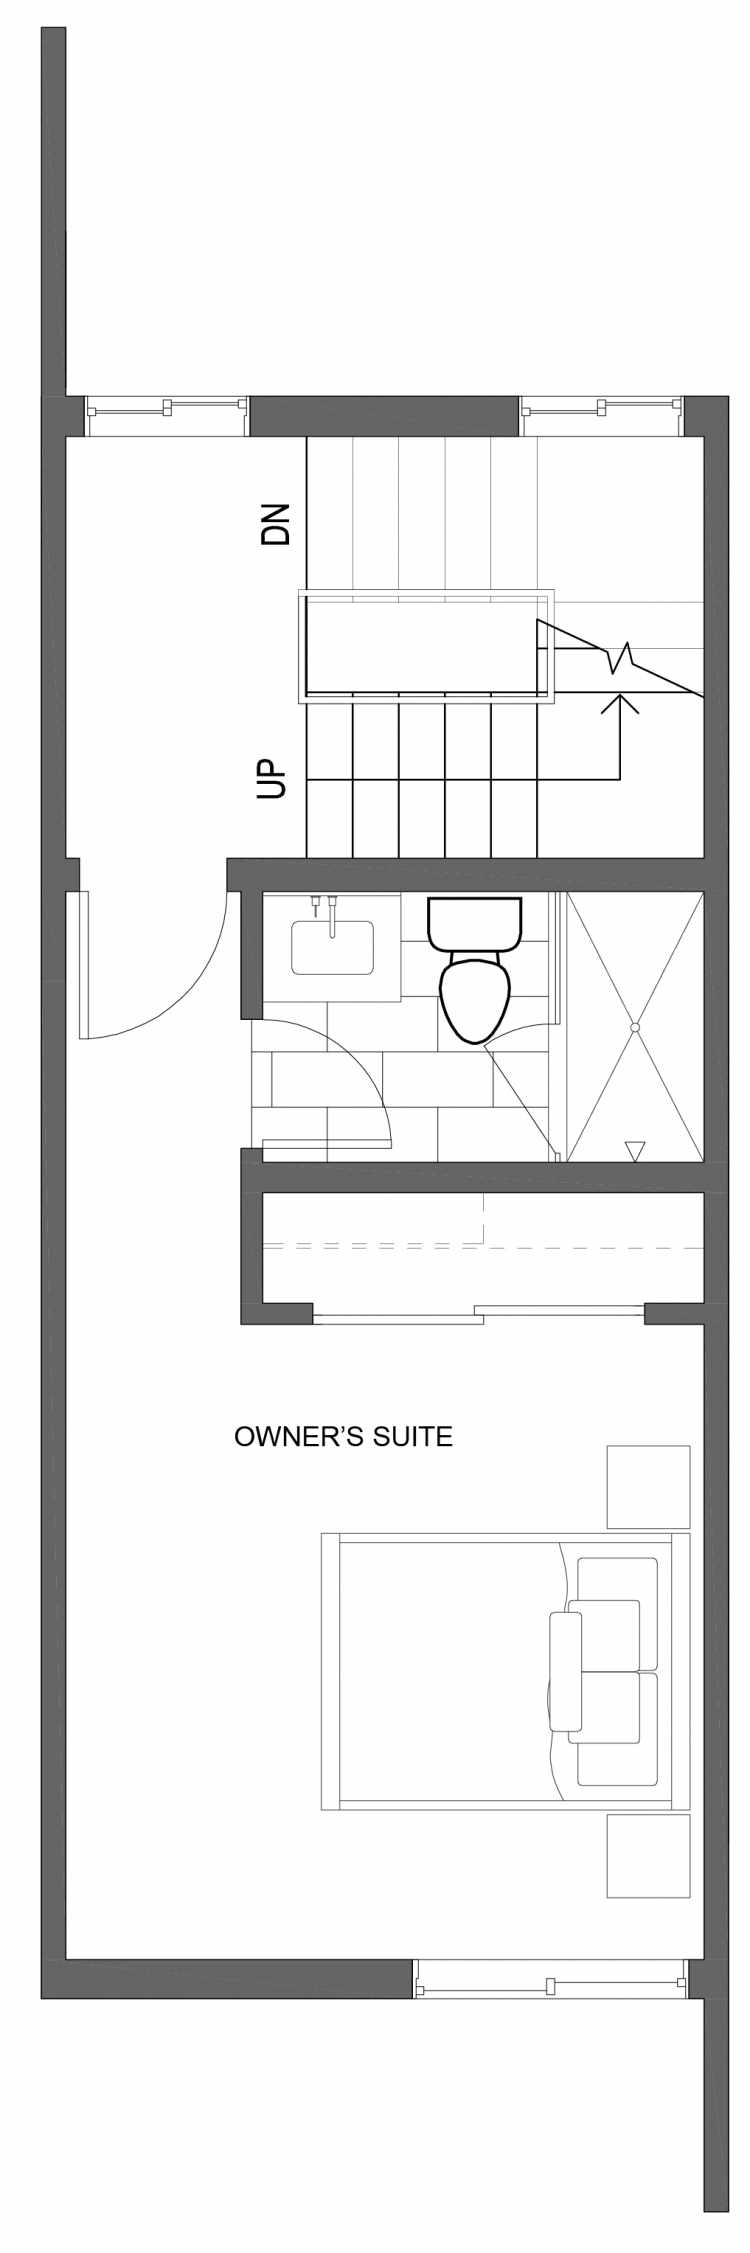 Third Floor Plan of 10425 Alderbrook Pl NW, One of the Zinnia Townhomes in the Greenwood Neighborhood of Seattle